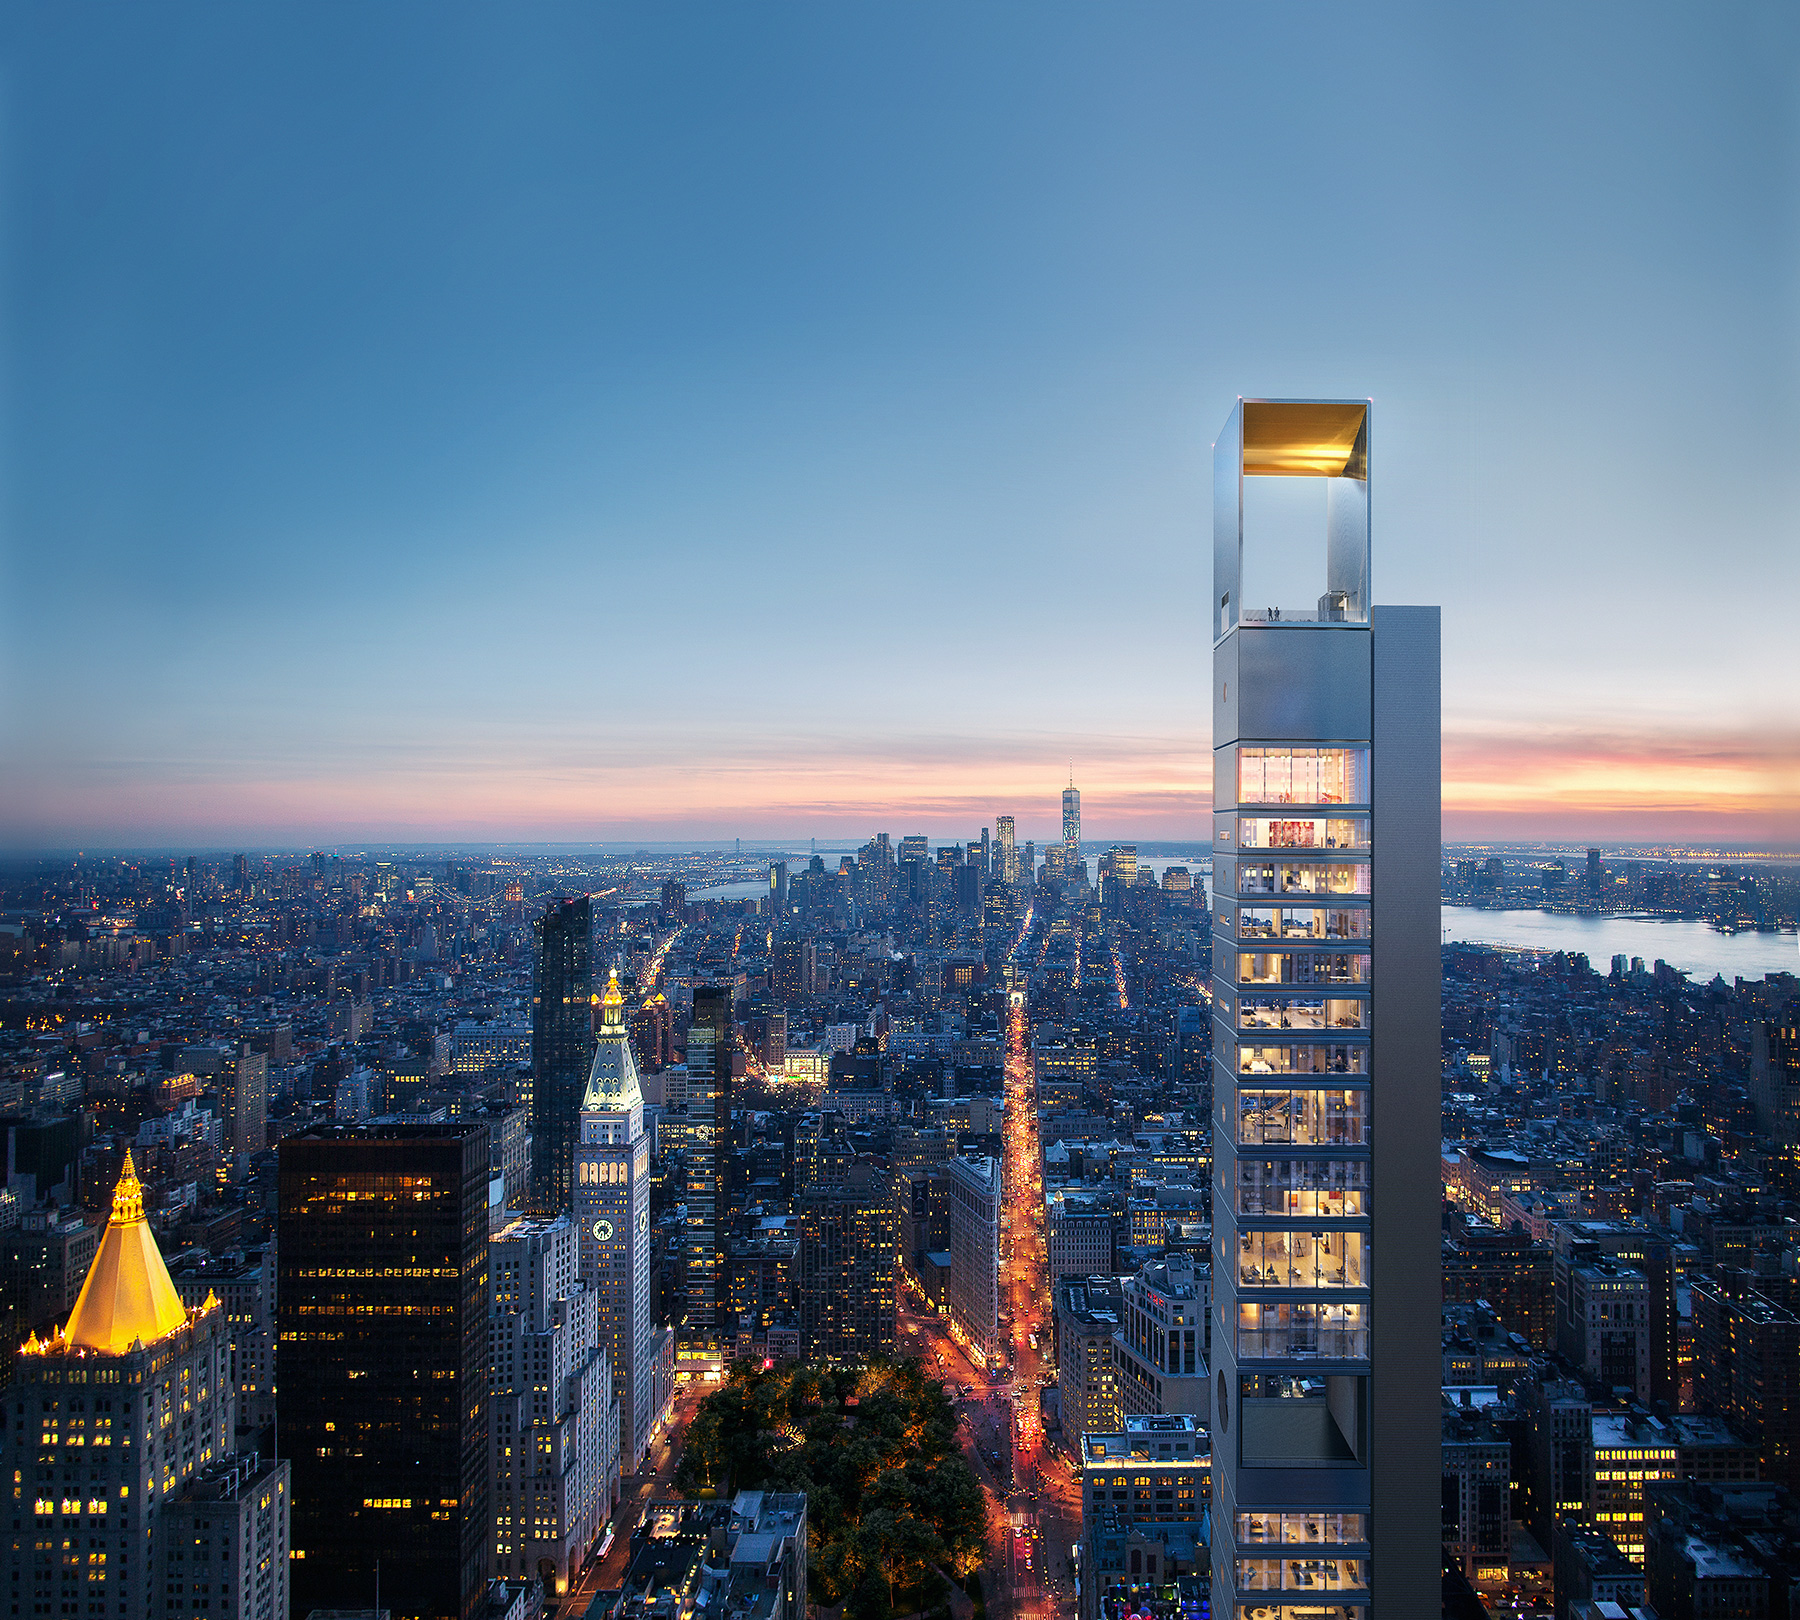 Russian Architecture Firm Unveils Designs for 1,001-Foot-Tall NYC Skyscraper